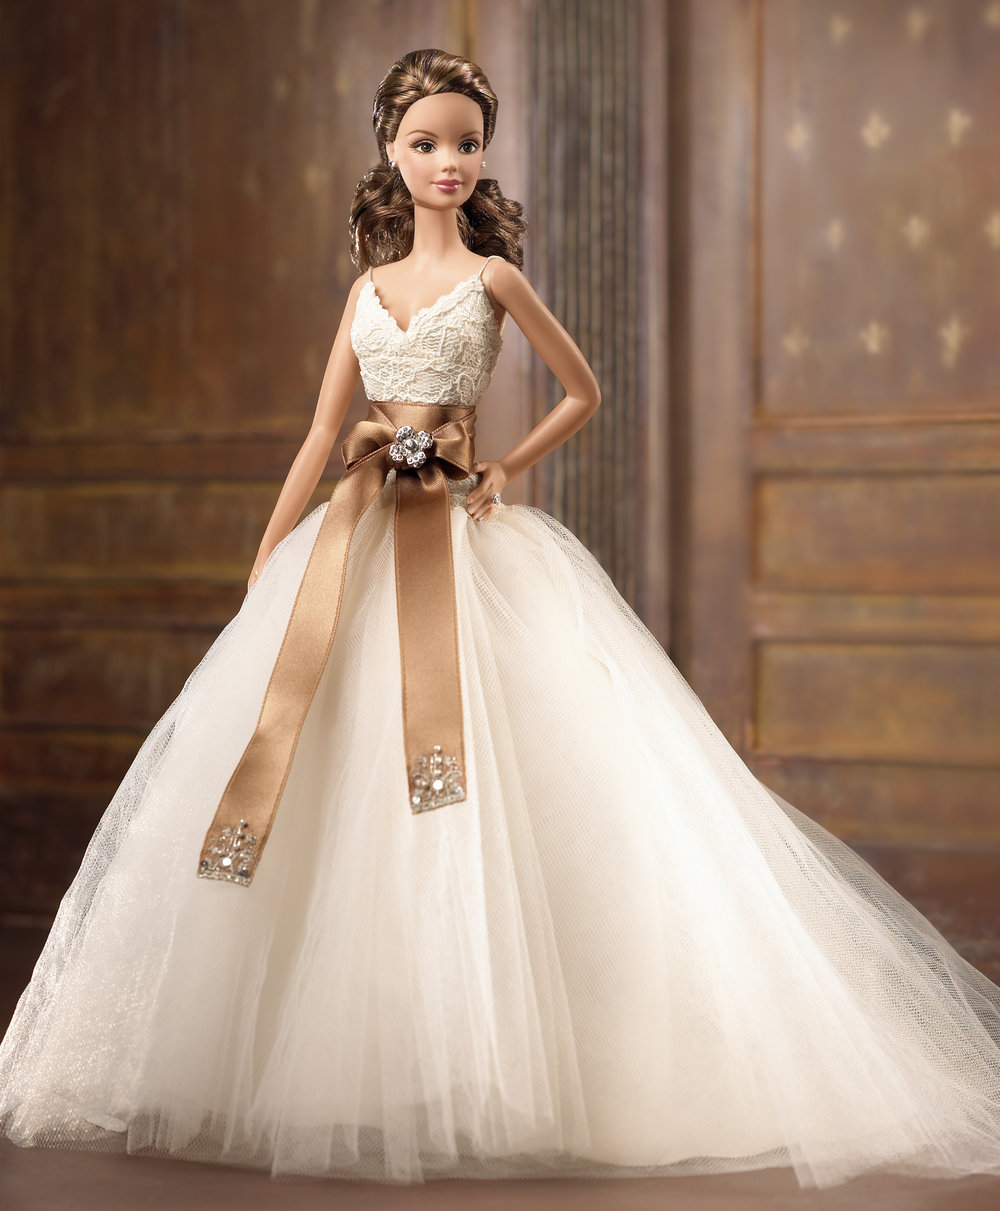 Monique Lhuillier Barbie Doll